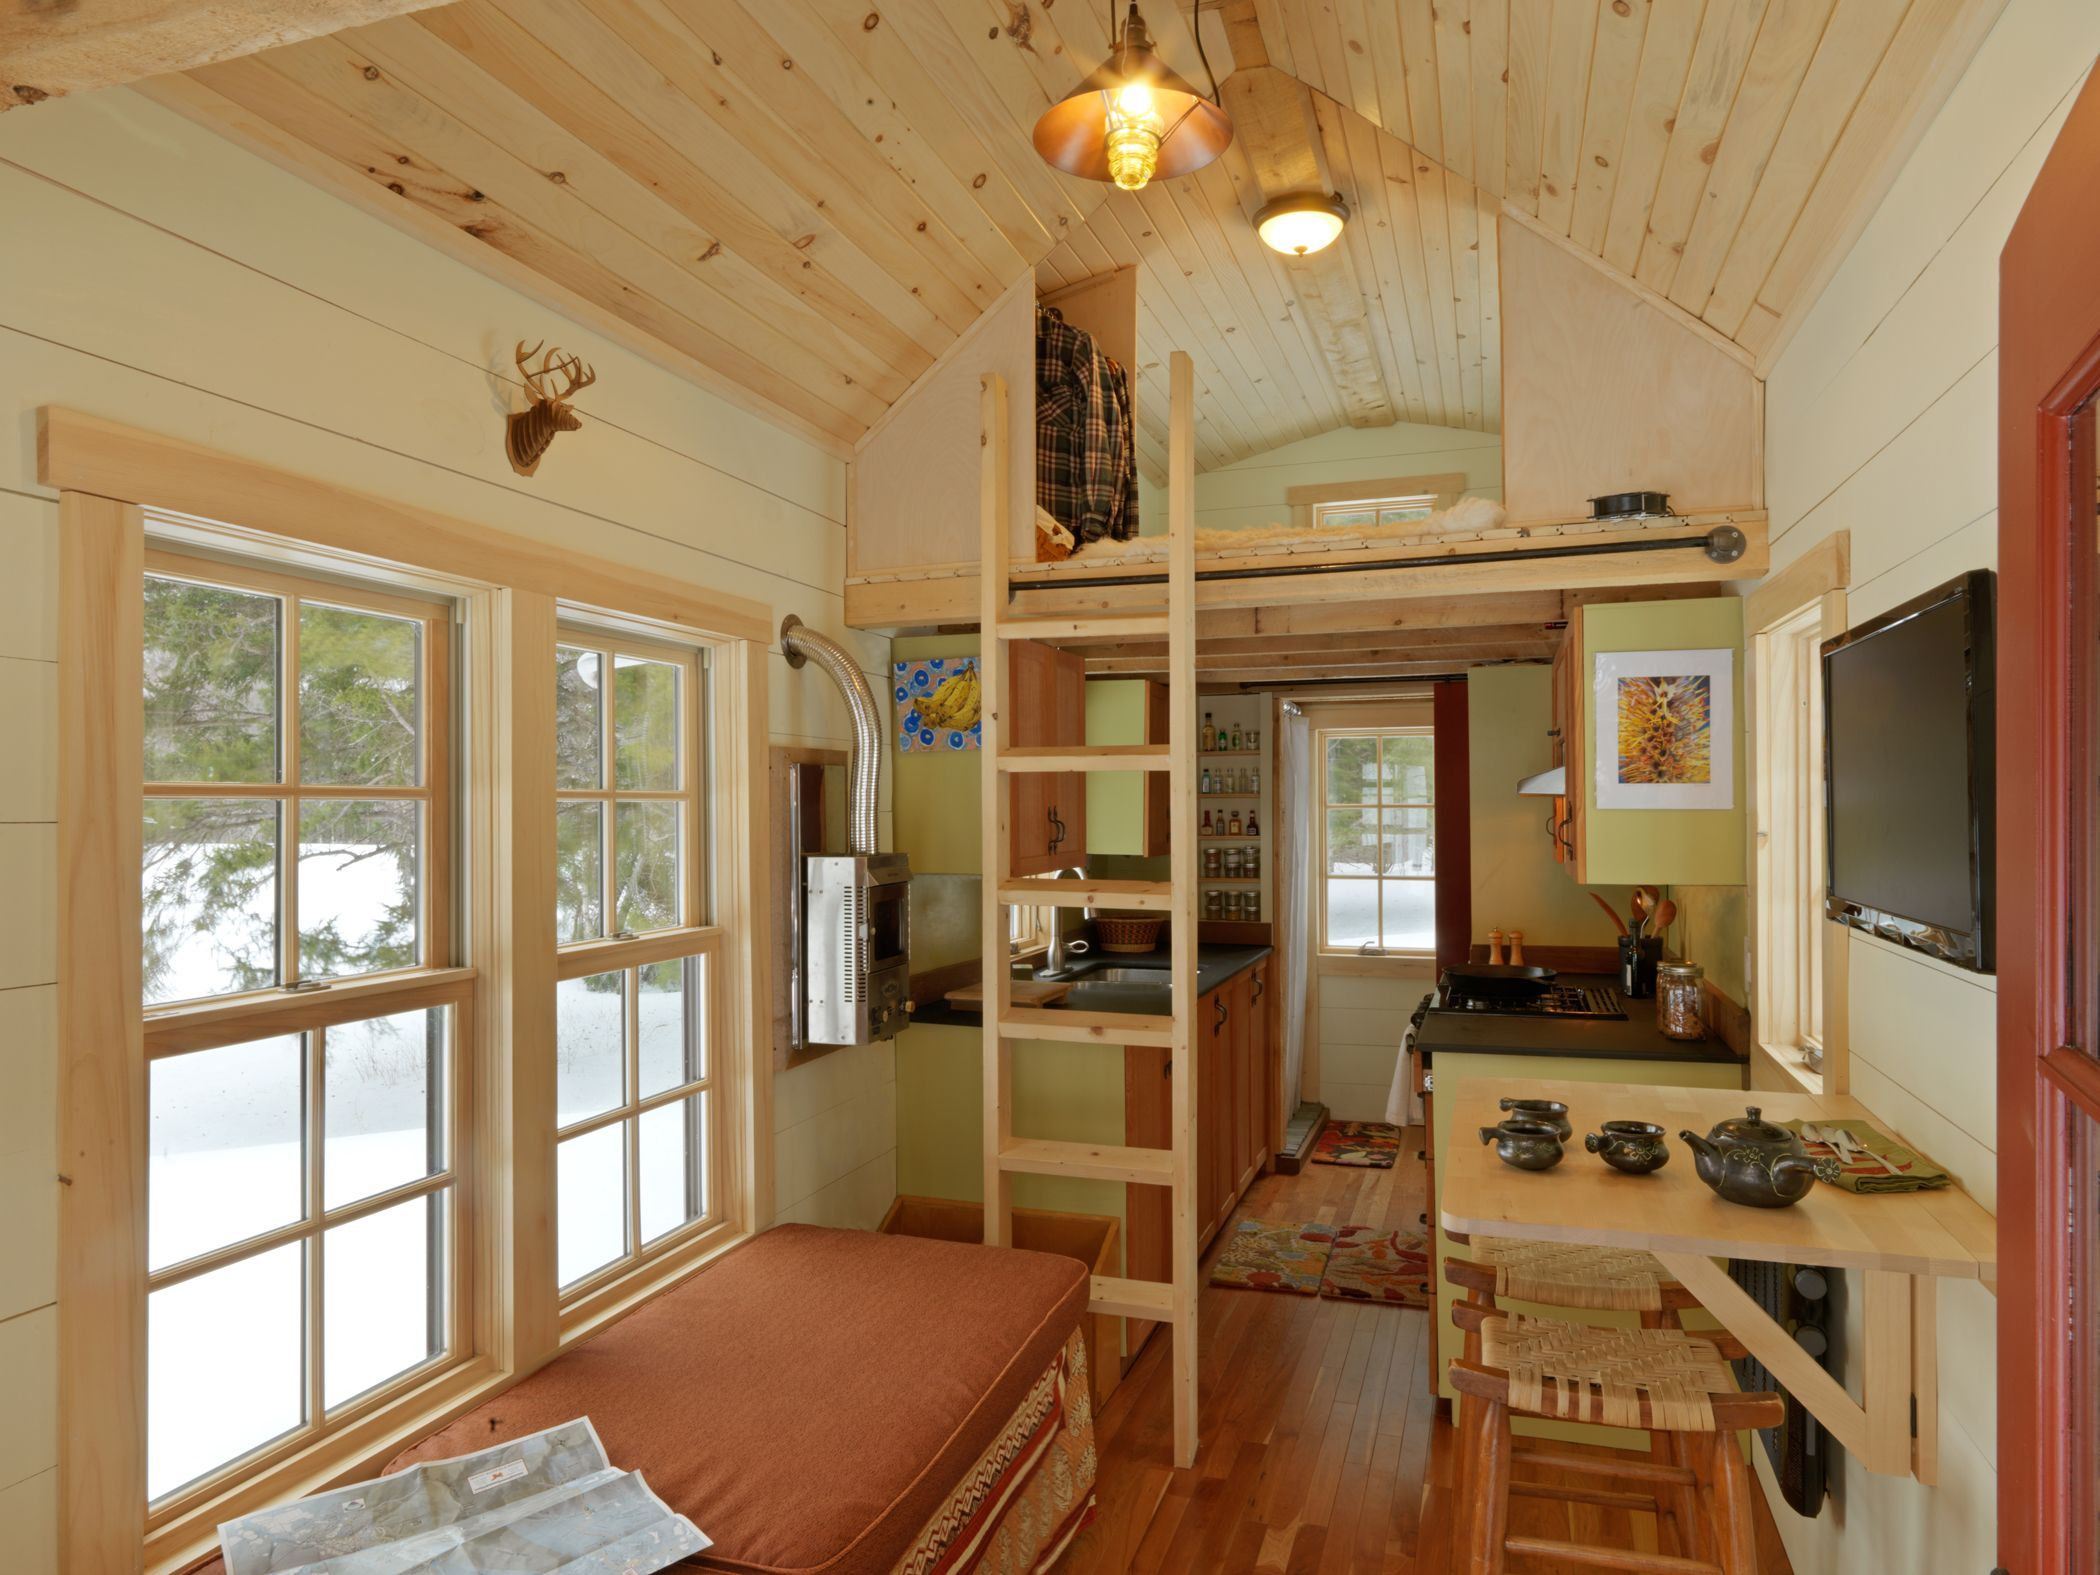 Ethan waldman 39 s tiny house includes everything he needs in for Small house interior